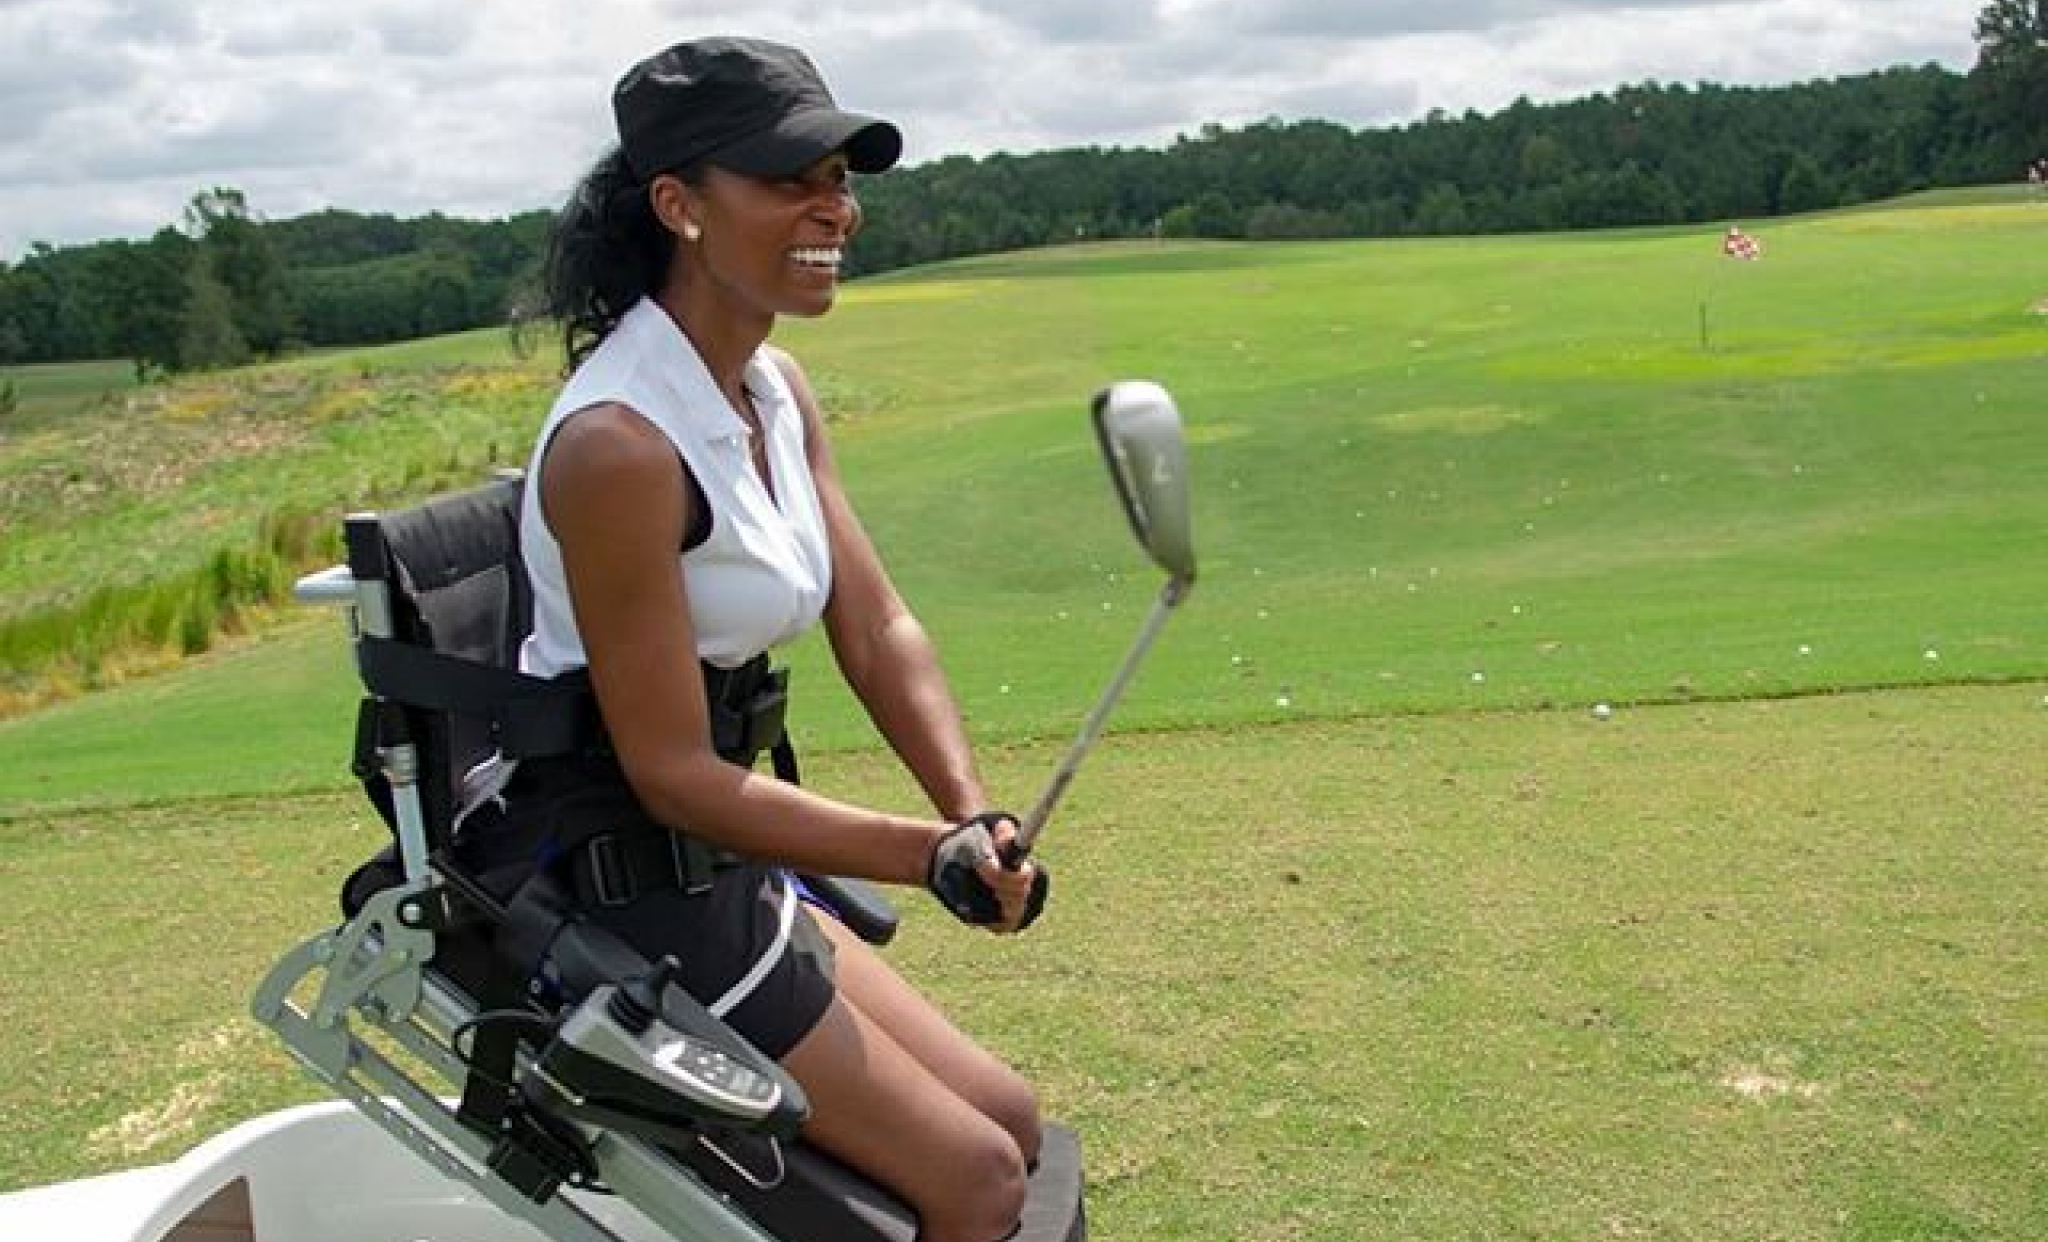 Tae McKenzie on golf course with assistive equipment on wheels holding golf club.